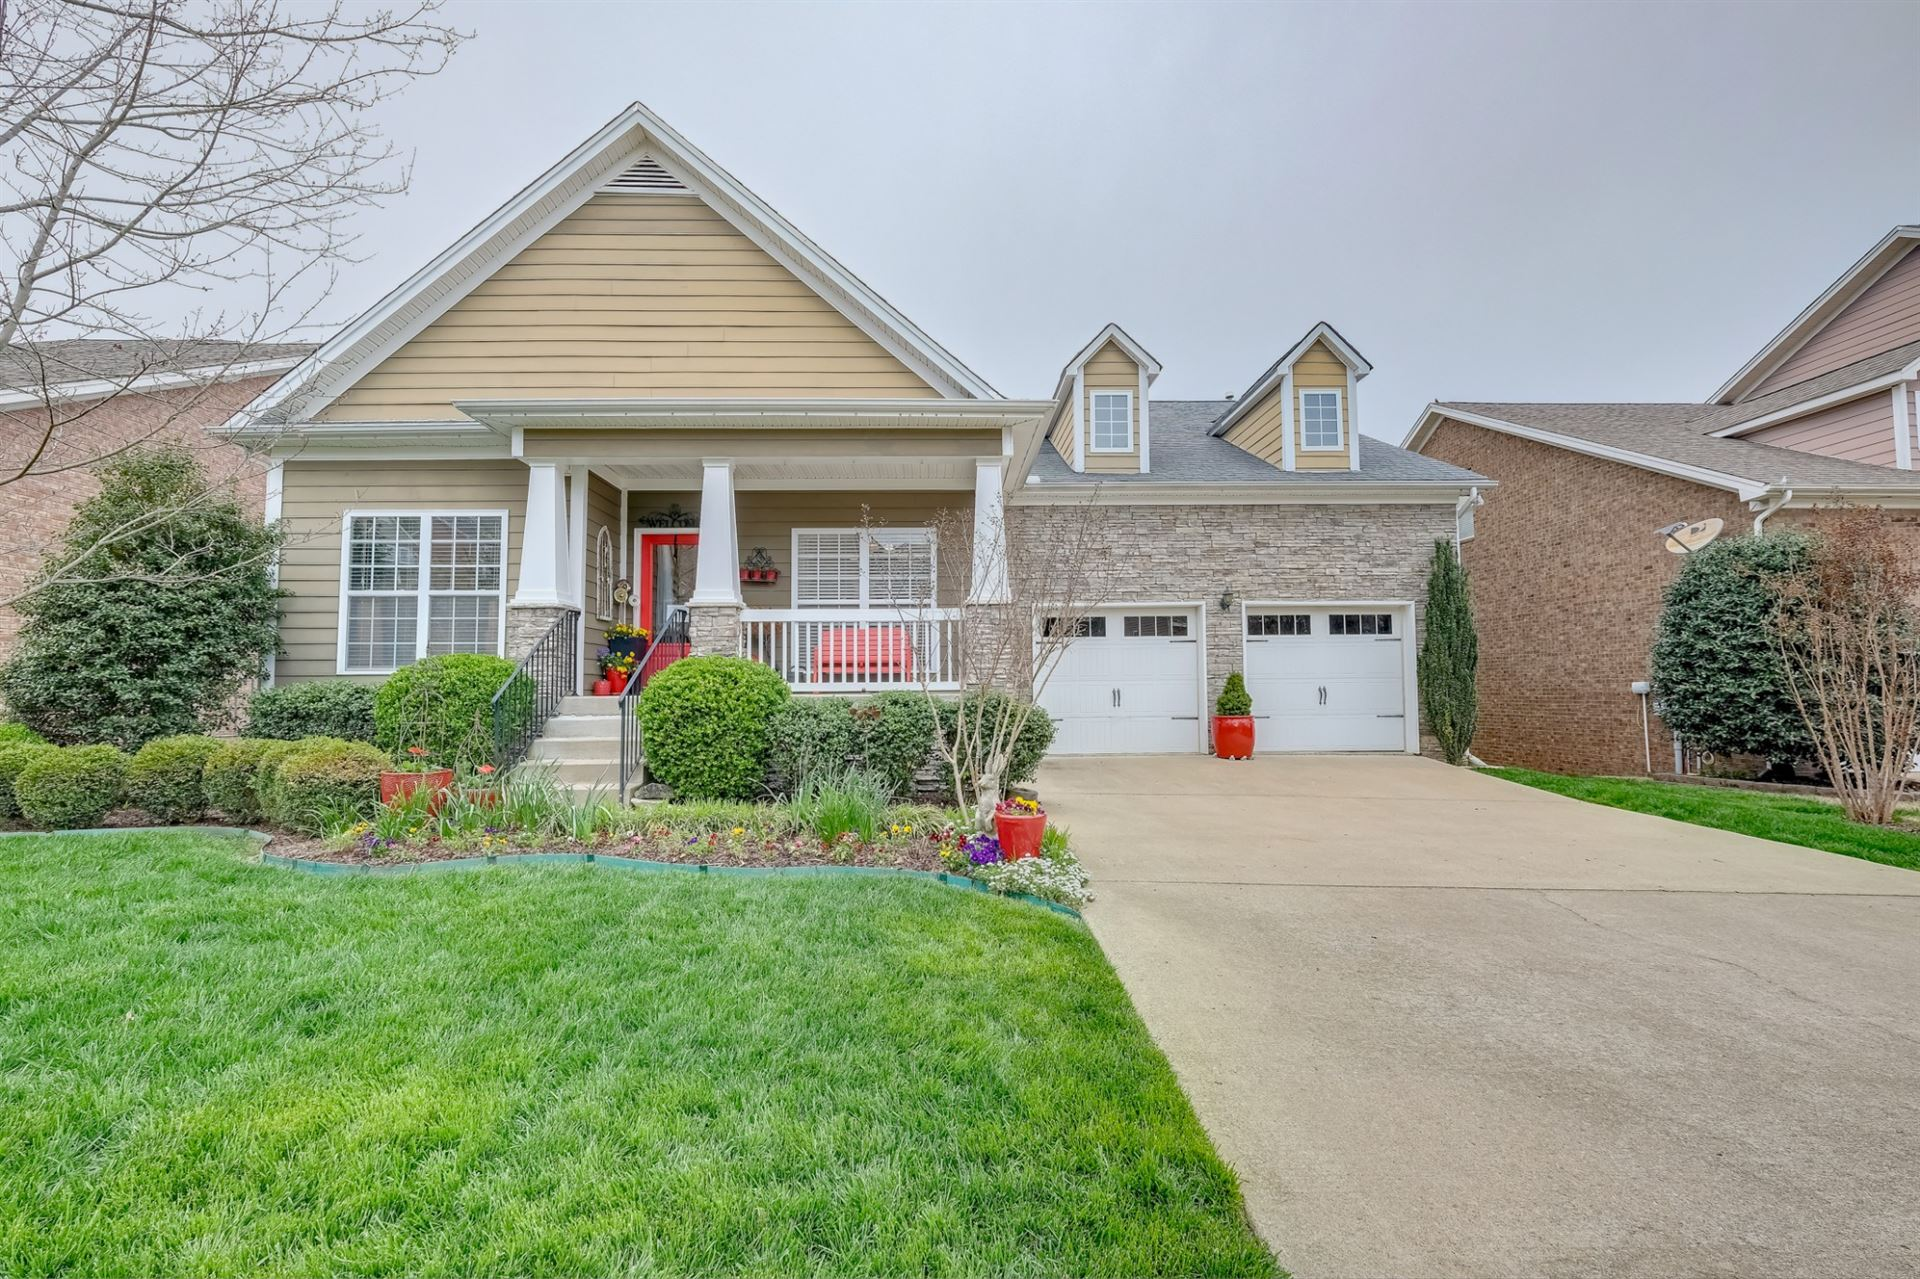 Photo of 4584 Sawmill Pl, Nolensville, TN 37135 (MLS # 2136637)